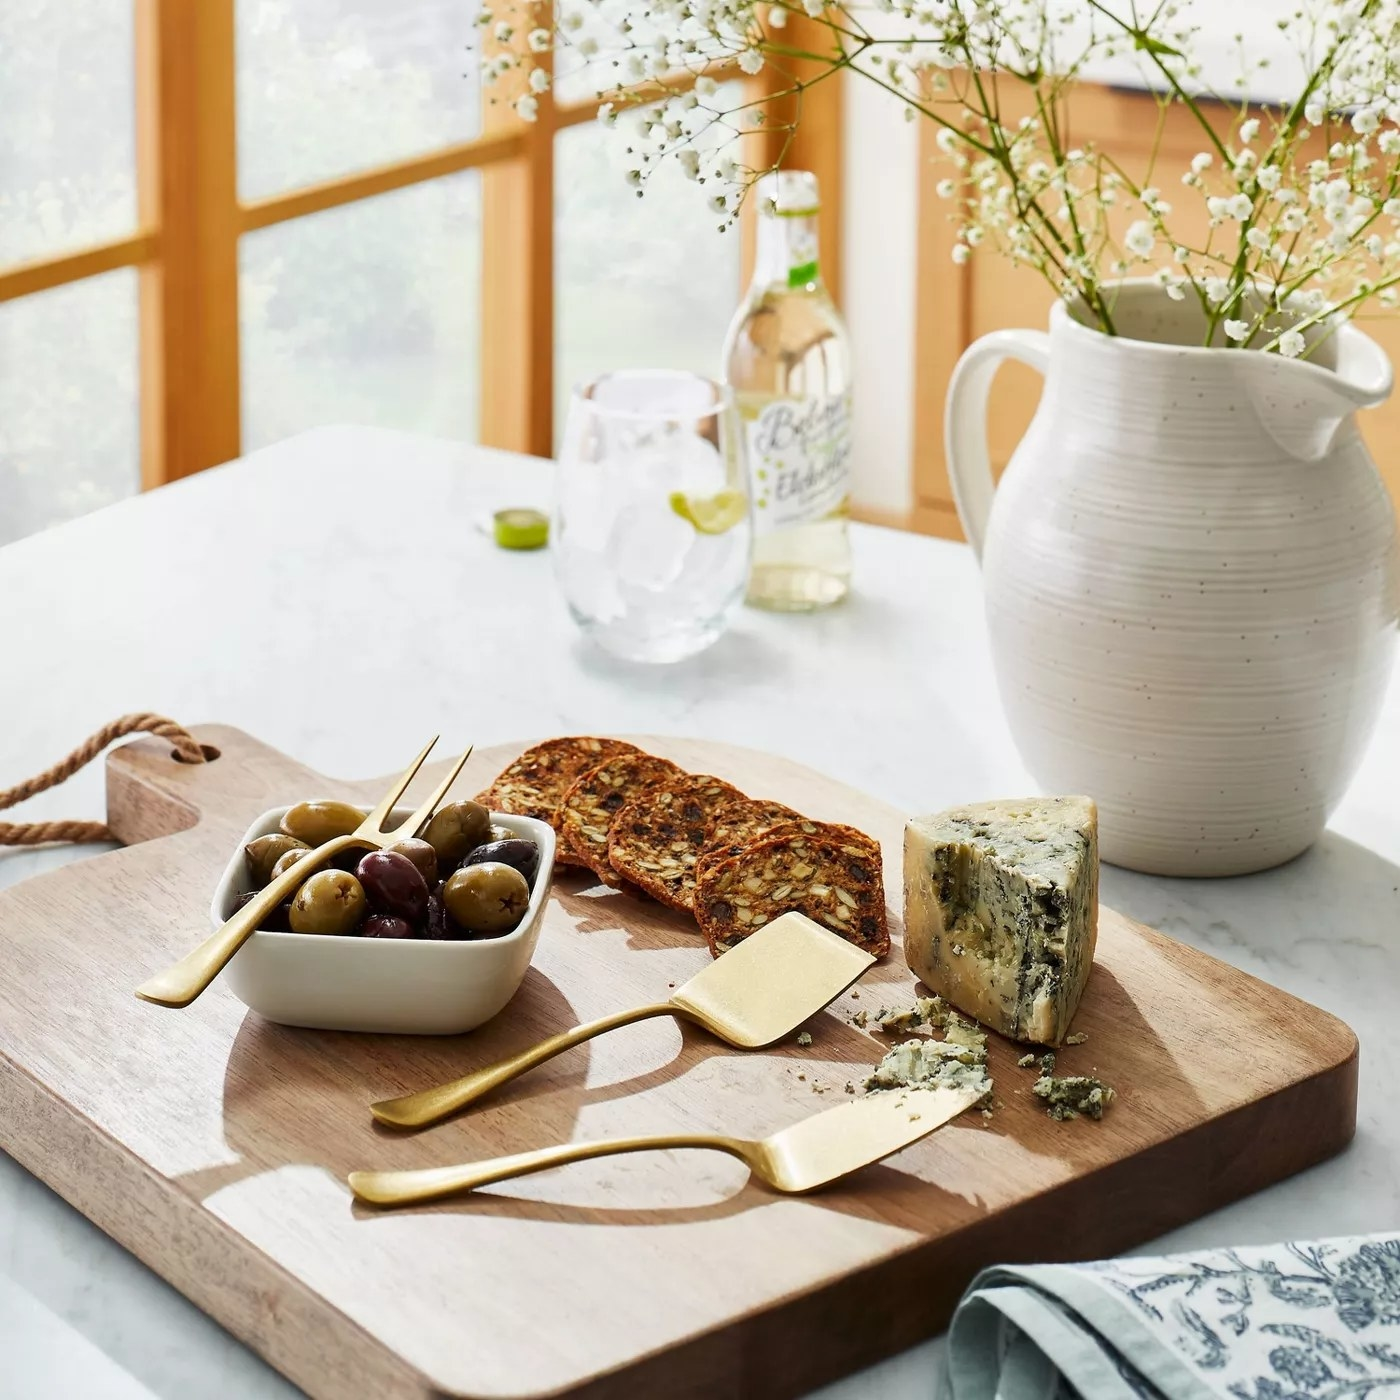 cheese knives and tray on counter